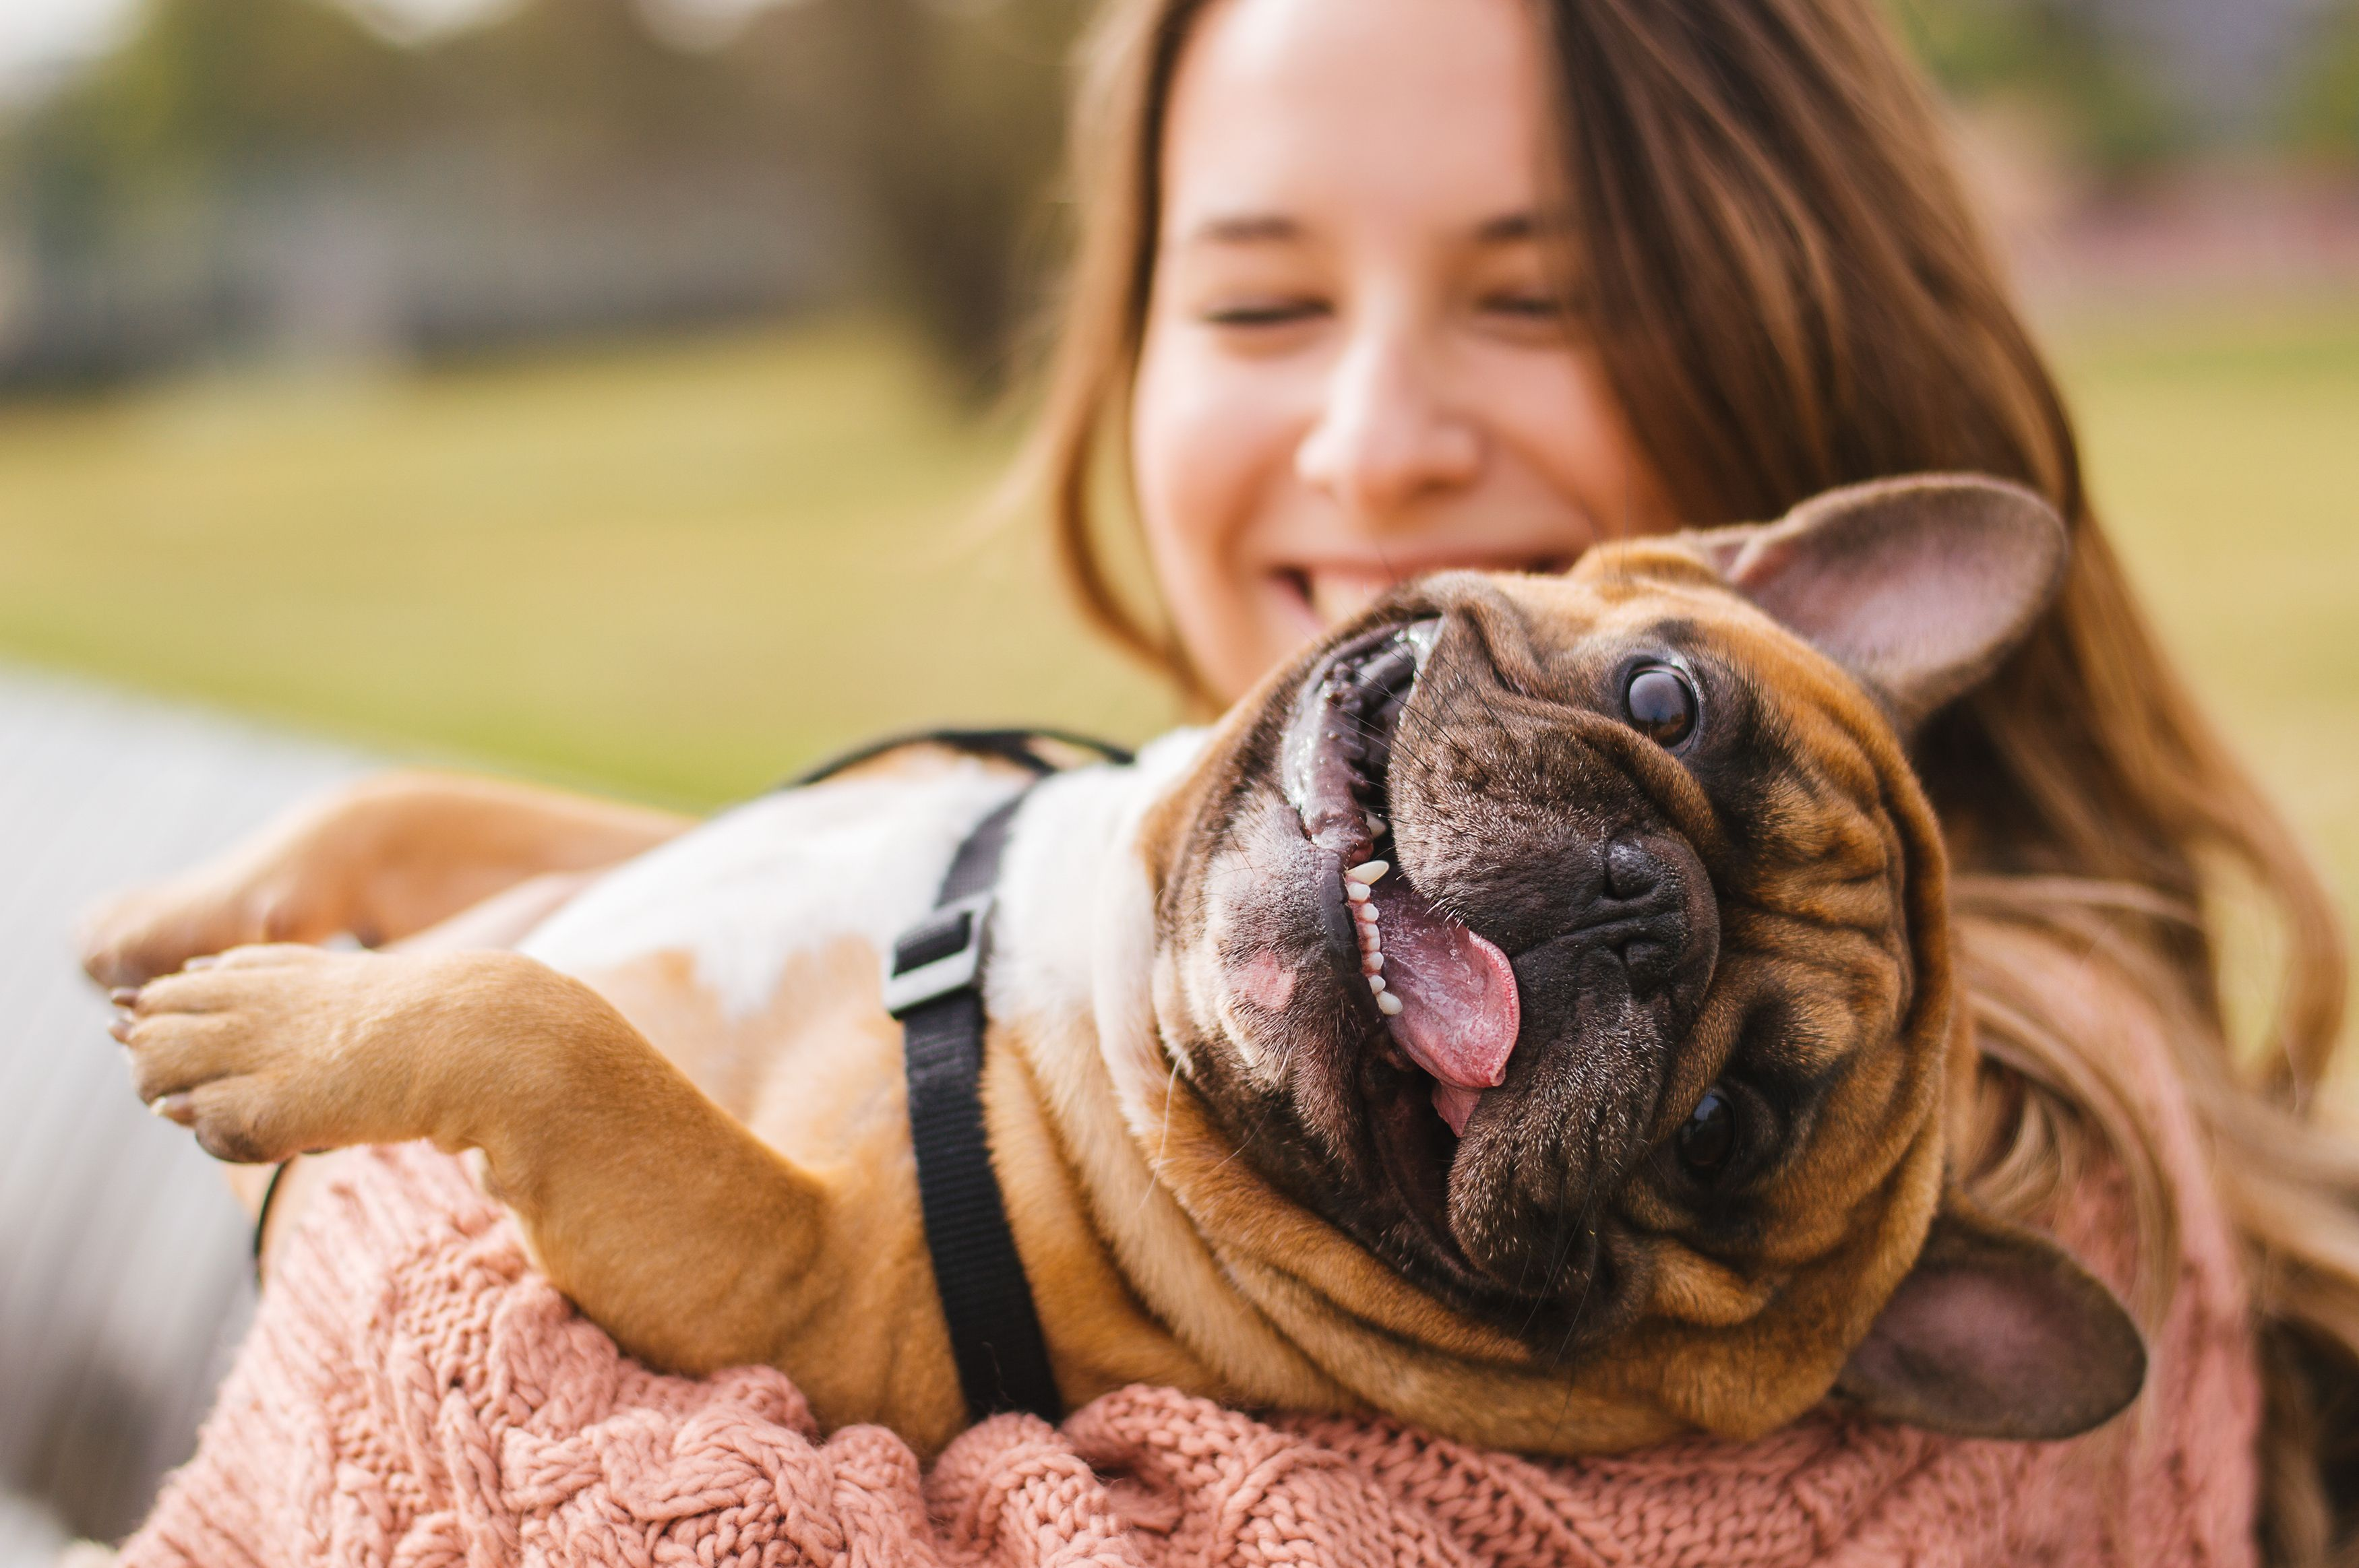 A happy dog captured in the hands of her owner.   Source: Shutterstock